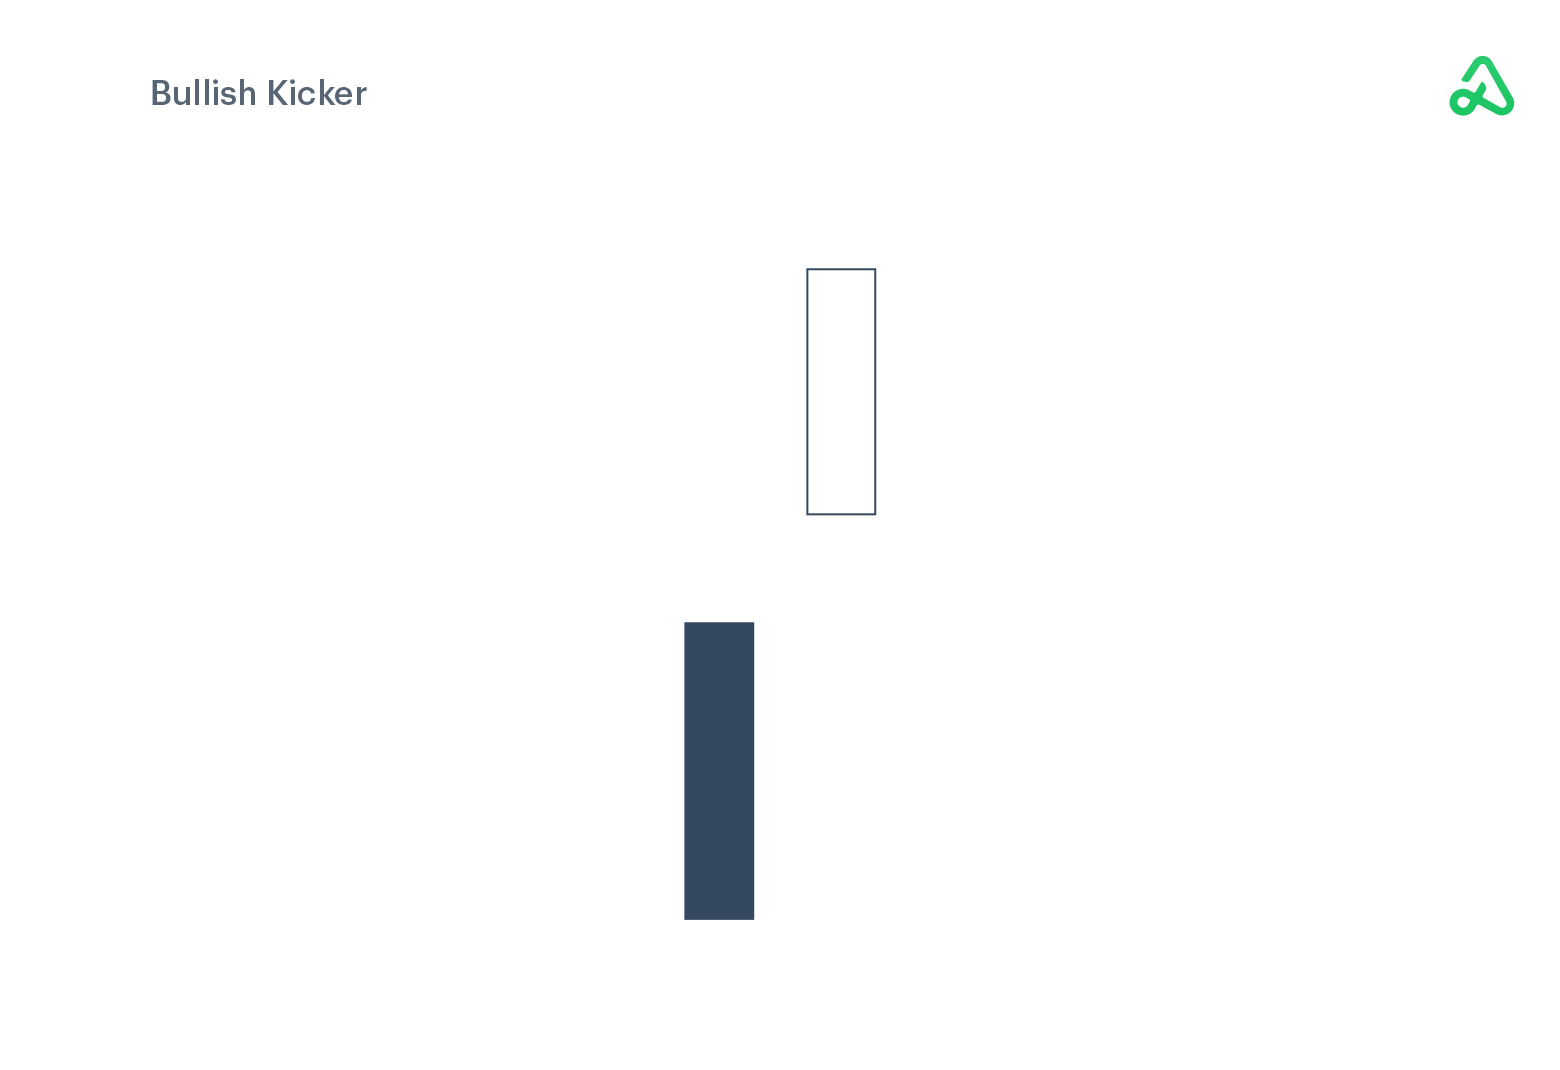 Bullish Kicker example image